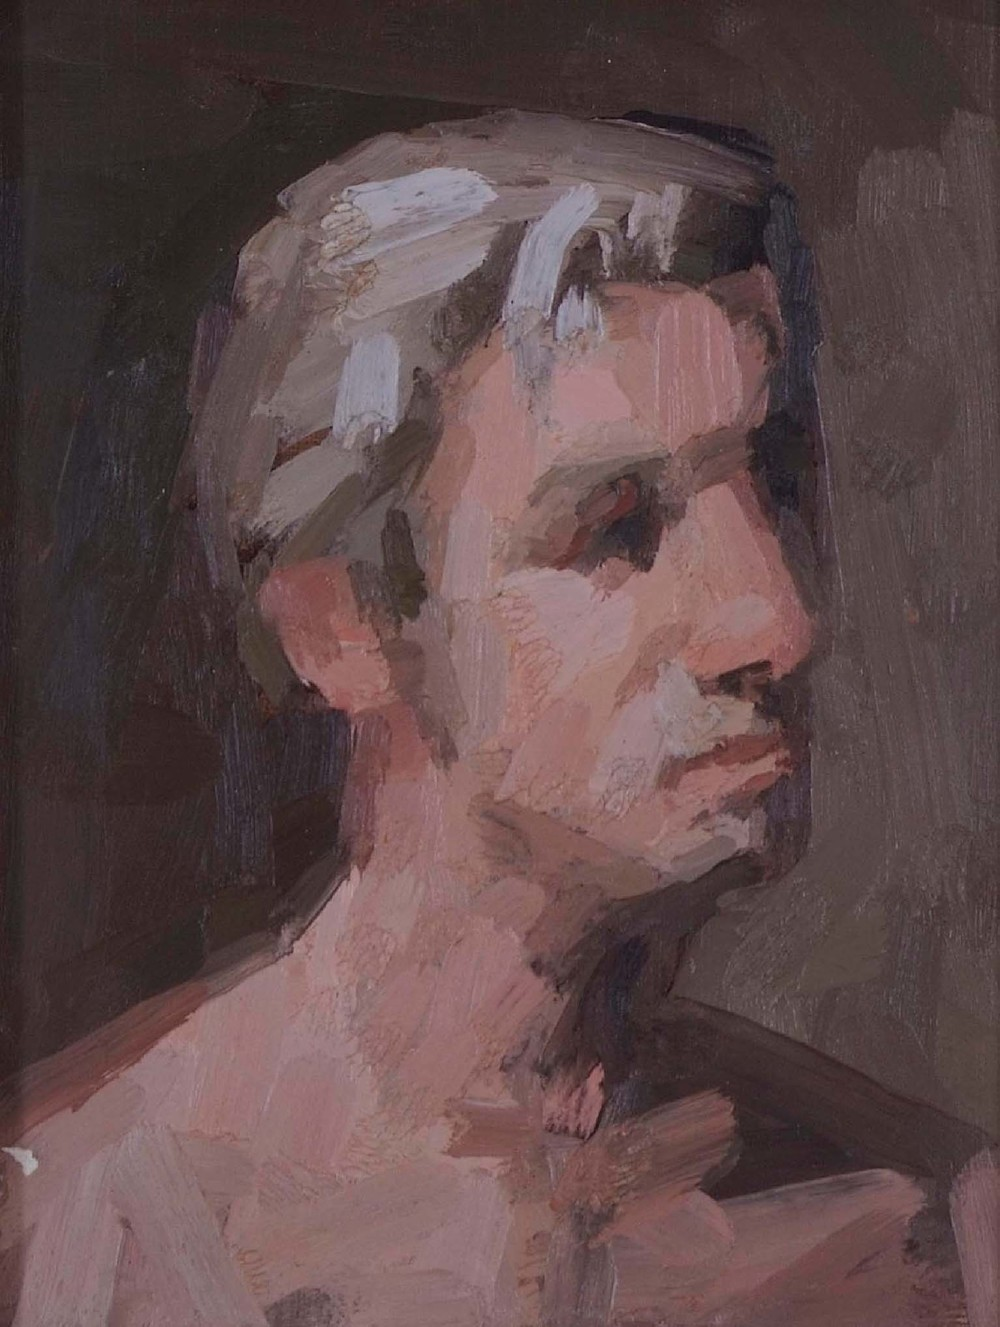 Portrait of J. L., 10.75 x 8.25 inches, oil on prepared paper